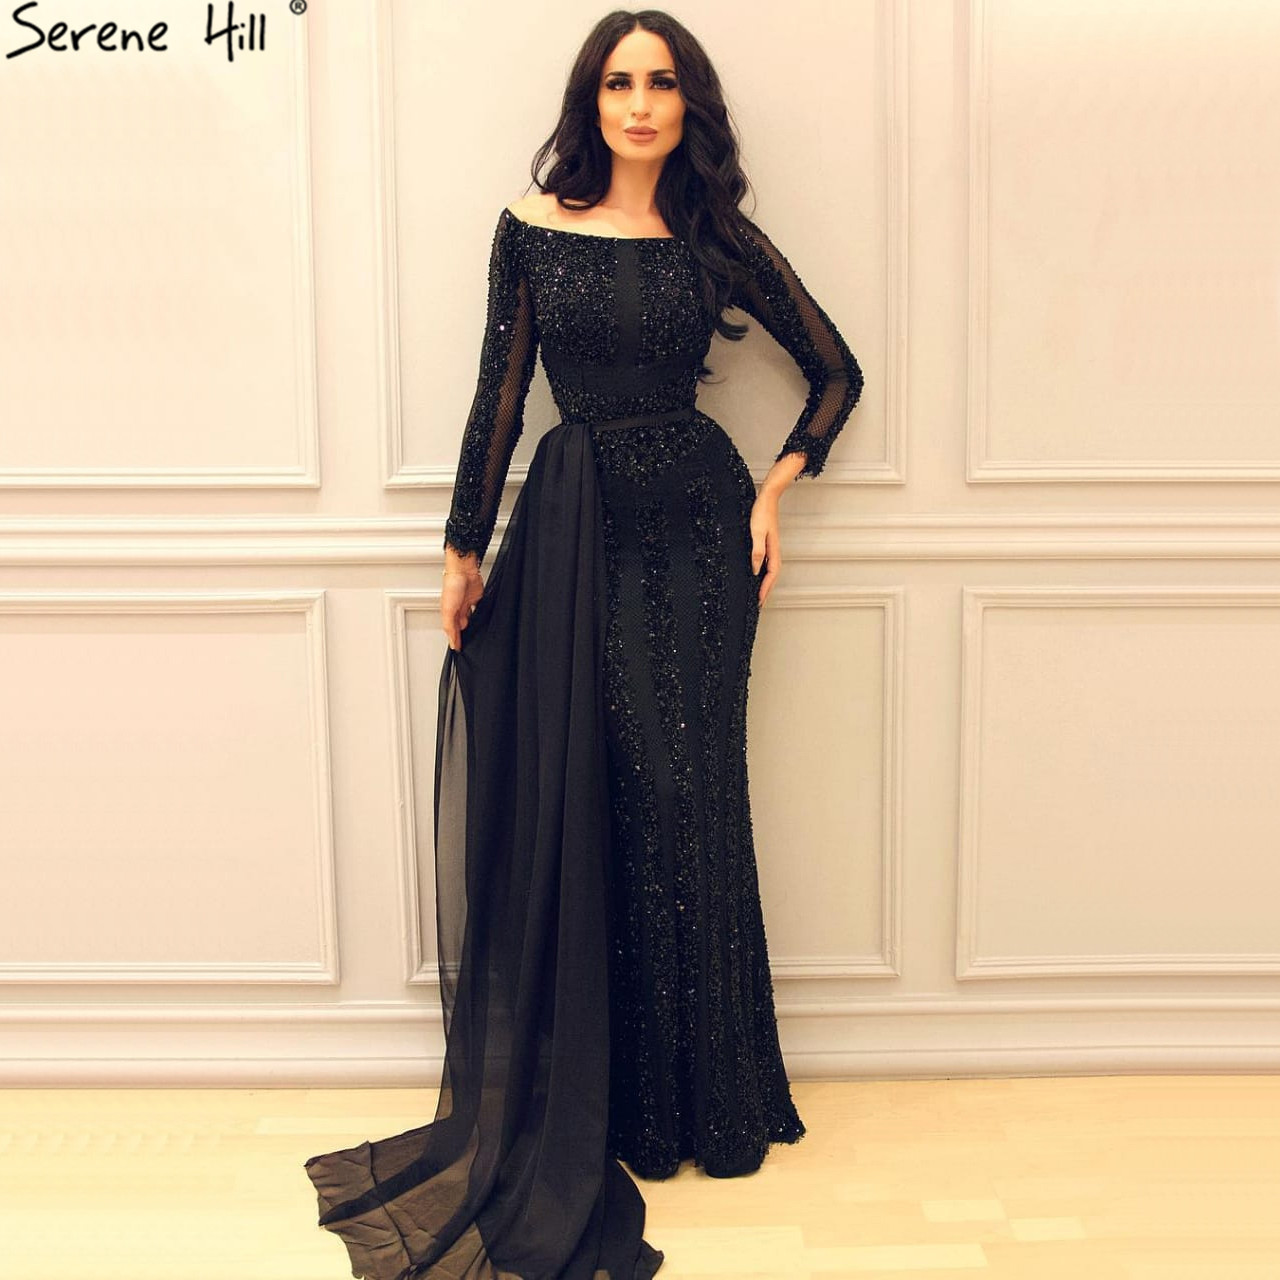 Long Sleeve Black Mermaid Tulle Evening Dress Beading Sequined Evening Gowns Real Photo 2019 Serene Hill  LA6009